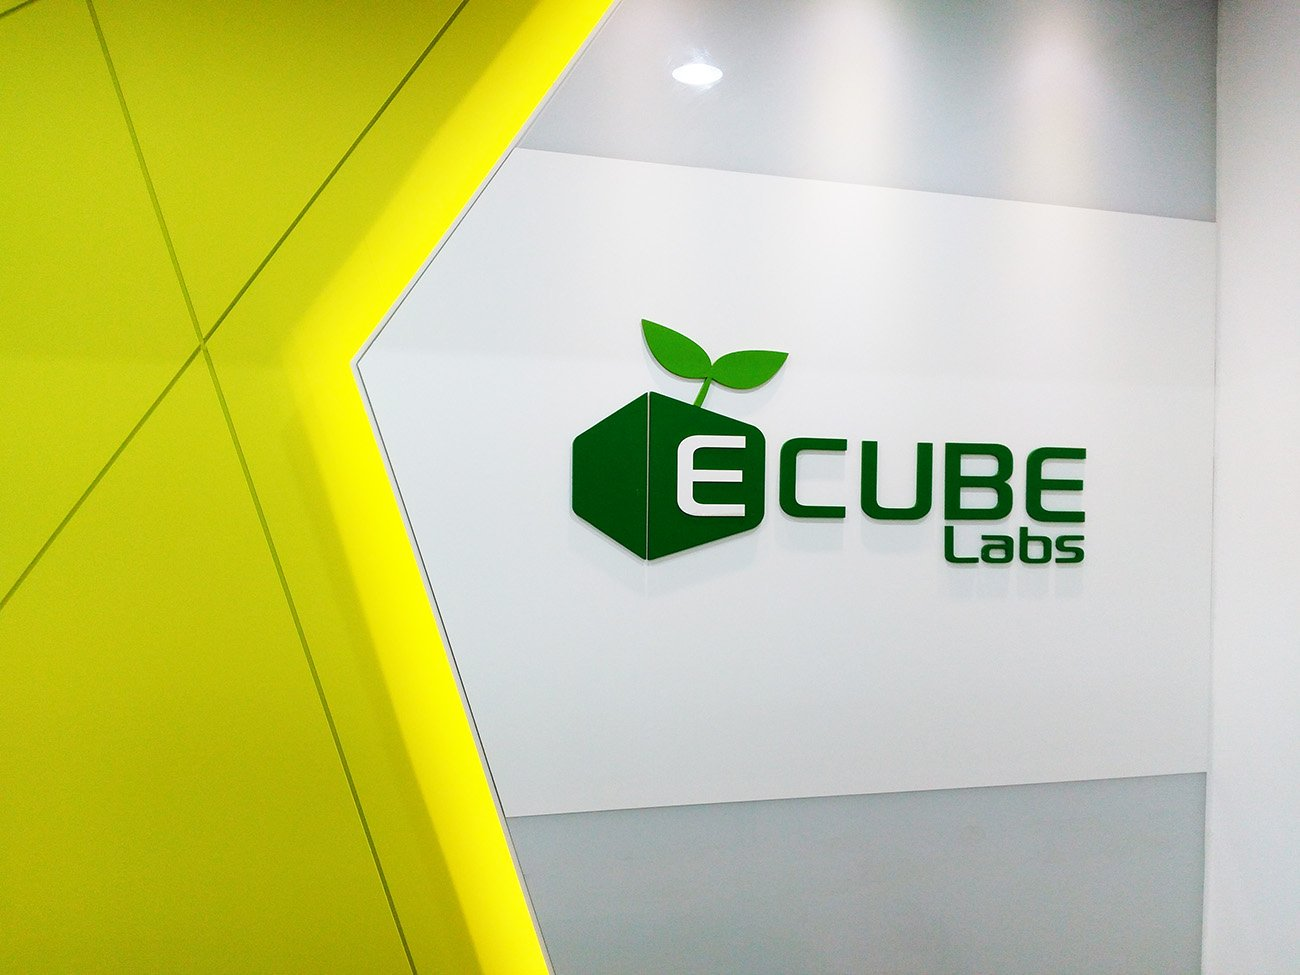 Ecube Labs Files Infringement Suit Against Bigbelly Over US Patent